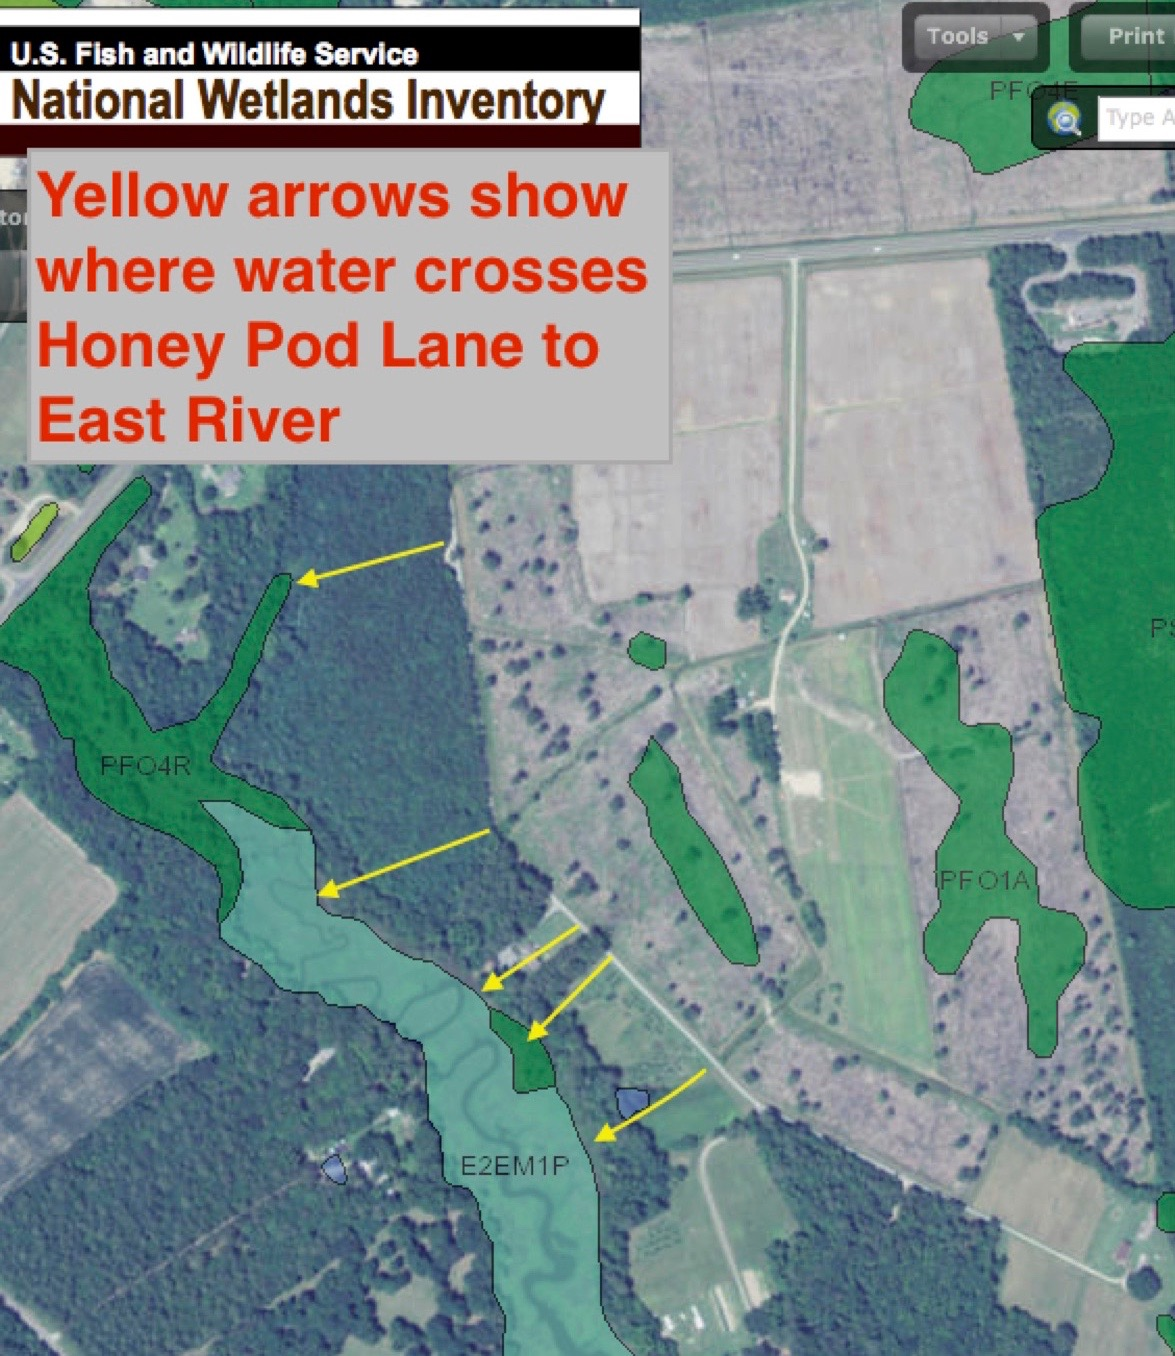 Yellow Arrows Placed On National Wetlands Inventory Map Show Runoff Channels Crossing Honey Pod Lane From